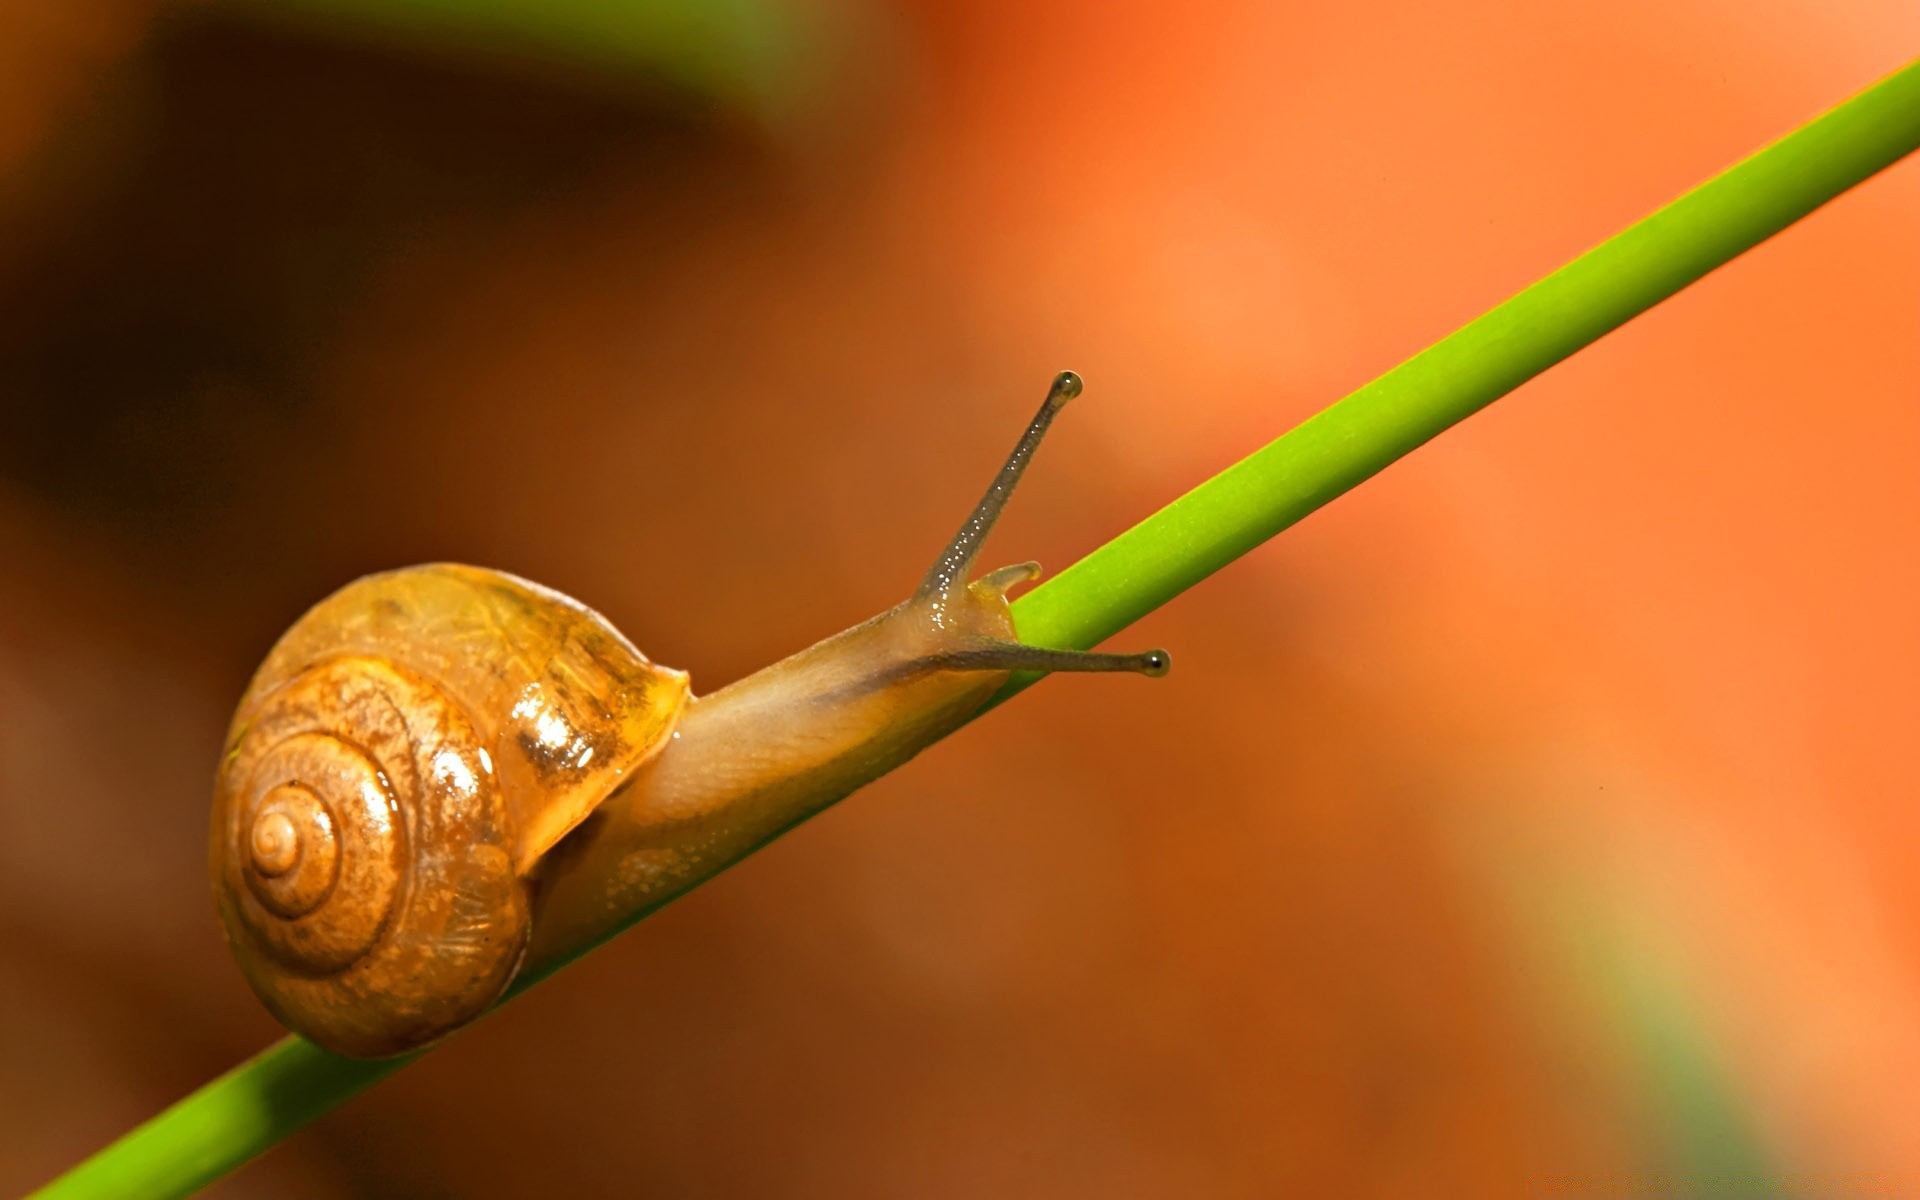 Insects snail invertebrate gastropod garden insect slow shellfish ...